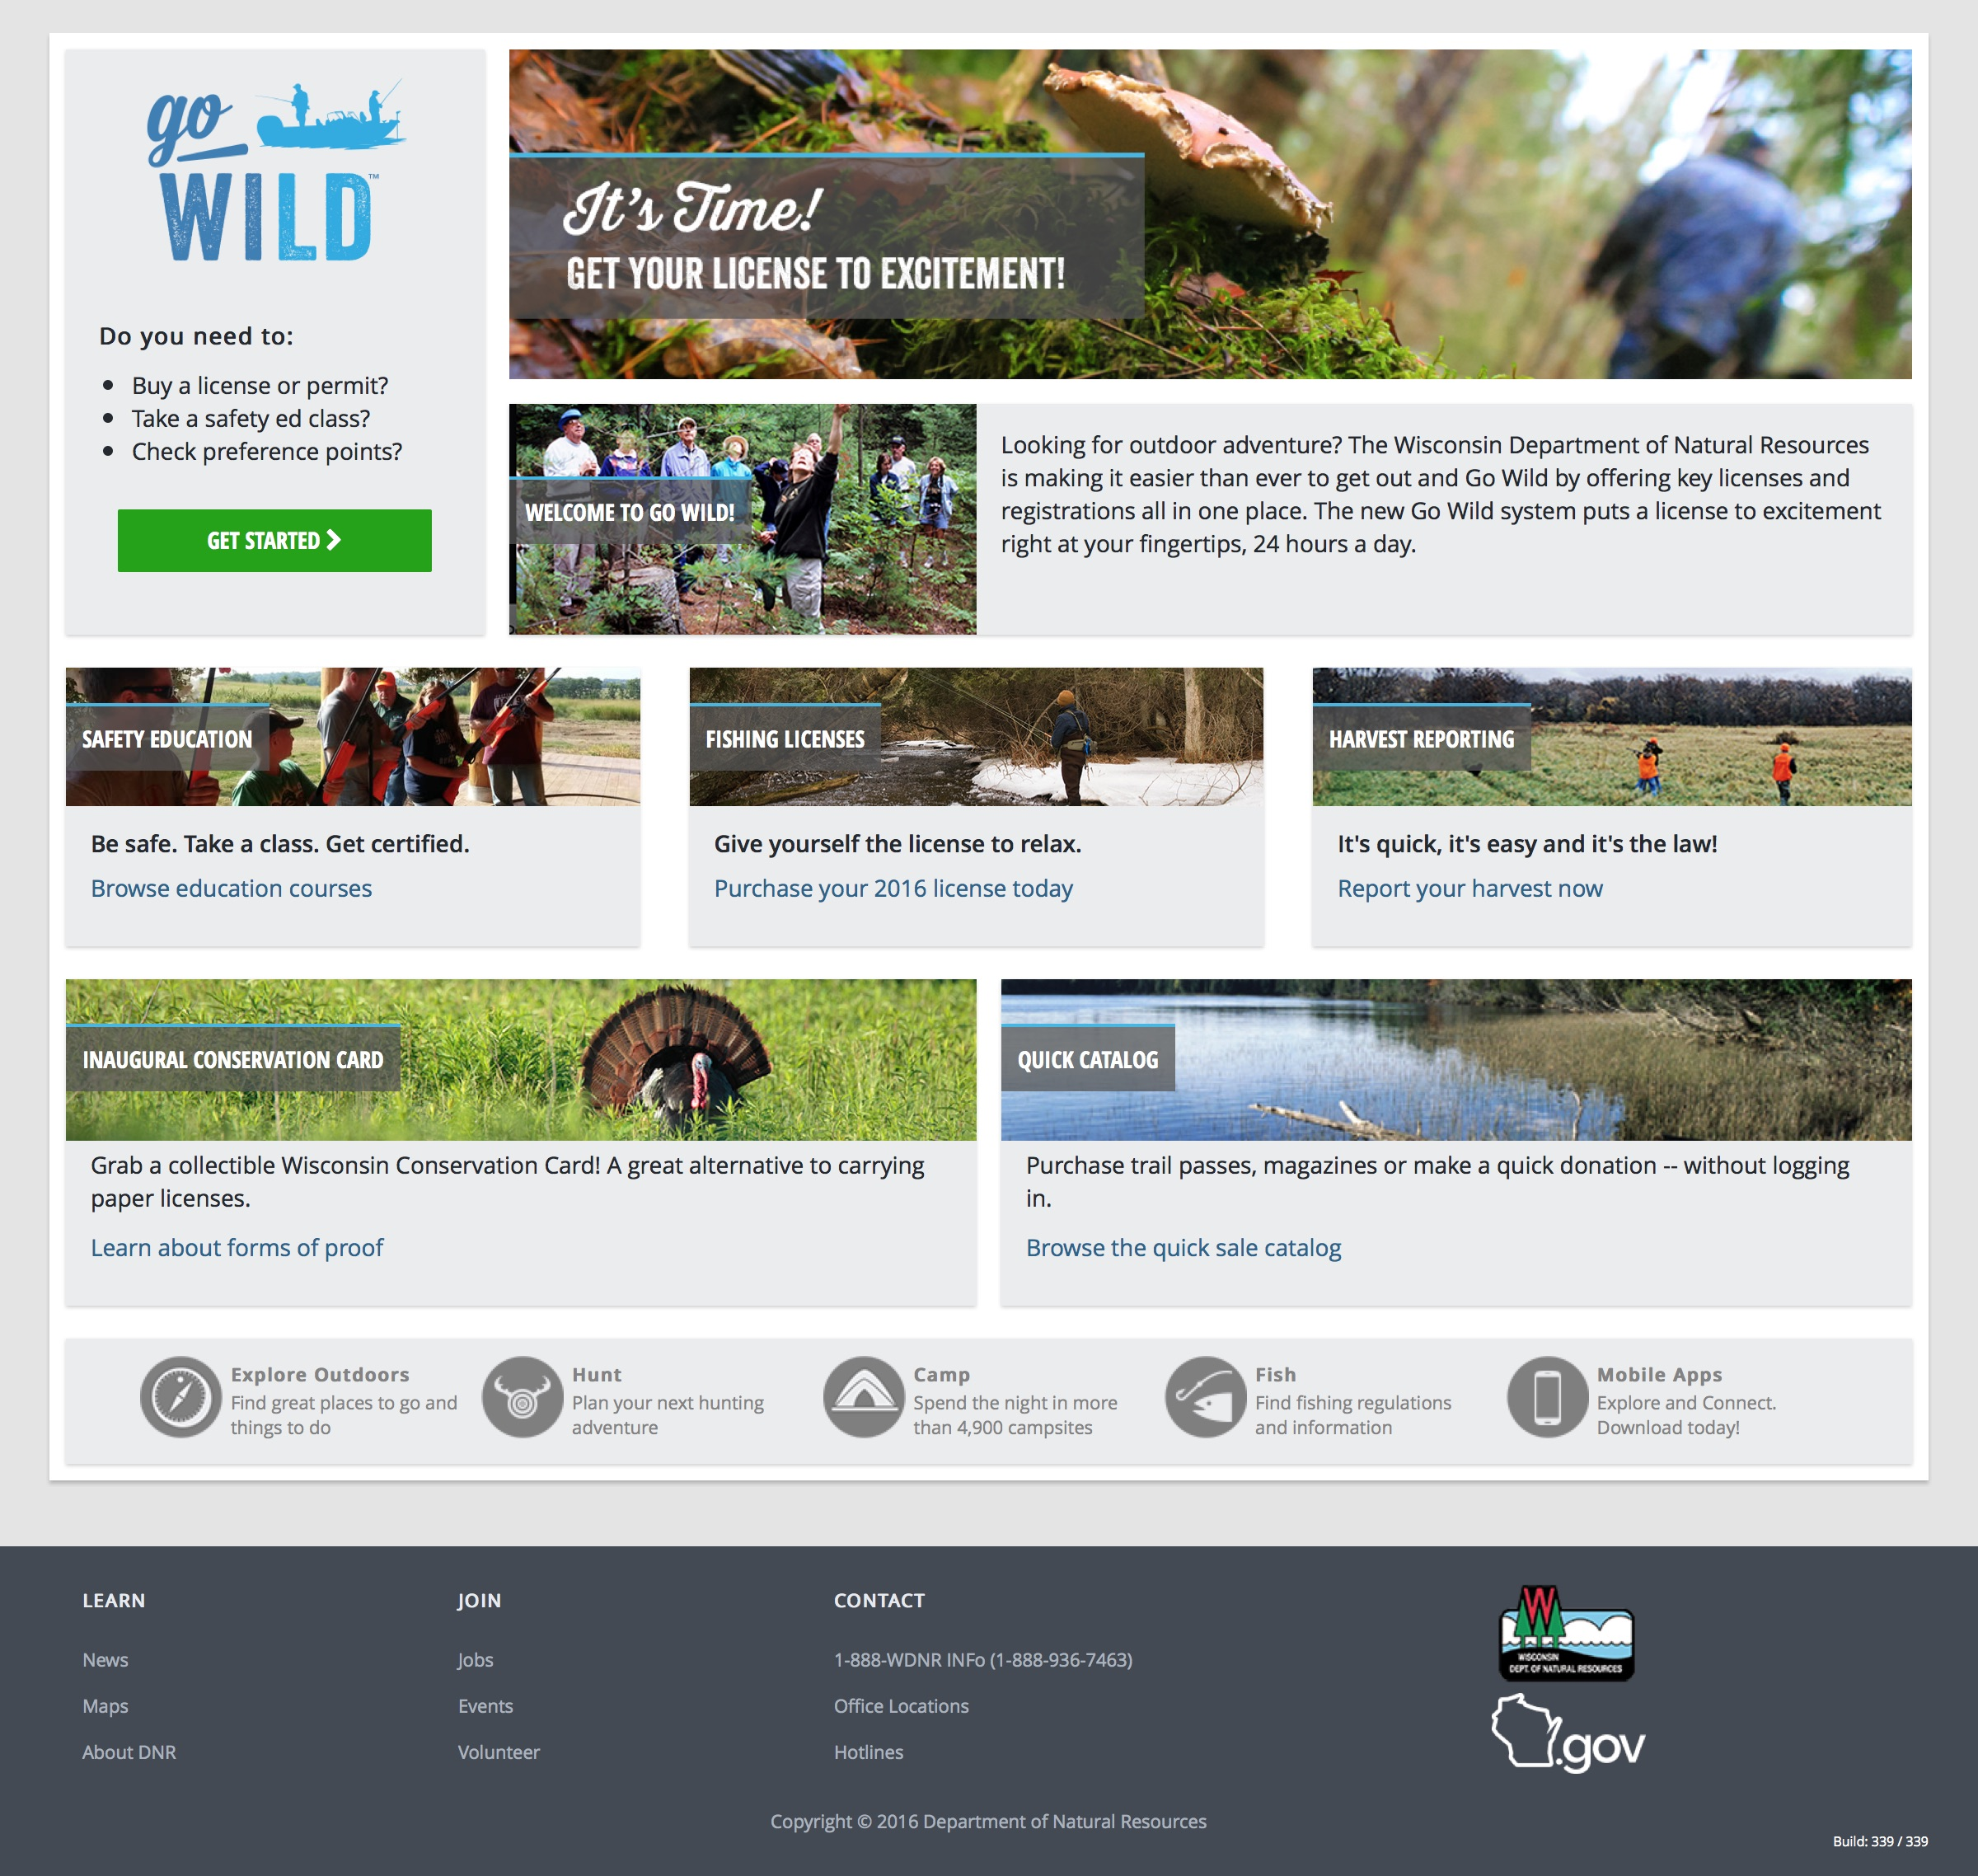 Go Wild is the Wisconsin Department of Natural Resources' new website for licenses and registrations.